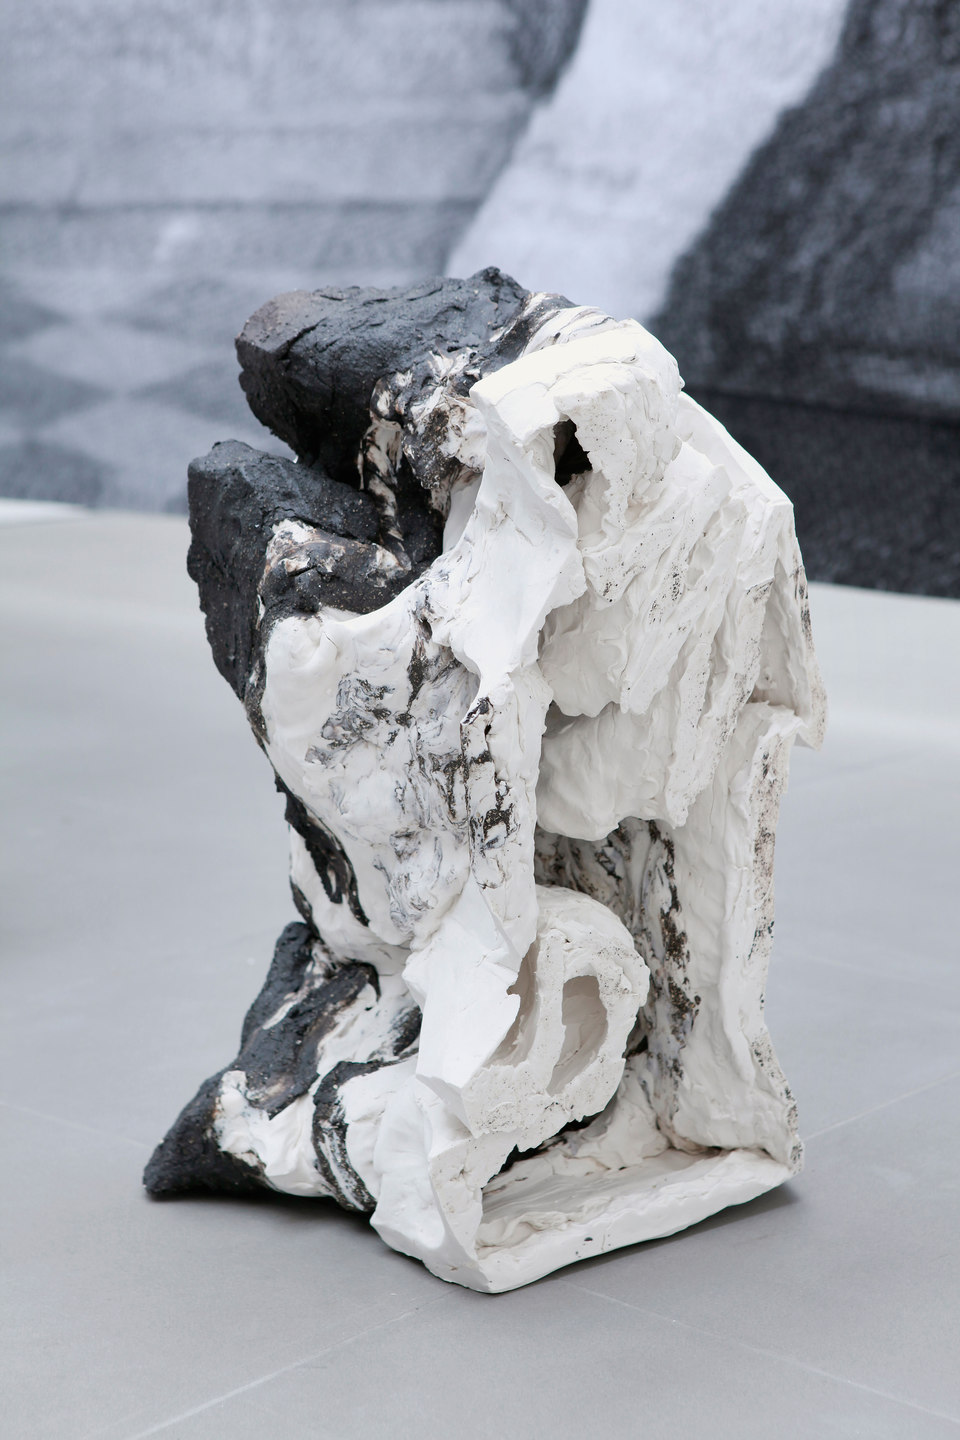 Peles Empire, Formation, 'formation 3', 2013, unglazed porcelain with black grog, h. 25 x w. 50 x d. 33 cm, Cell Project Space